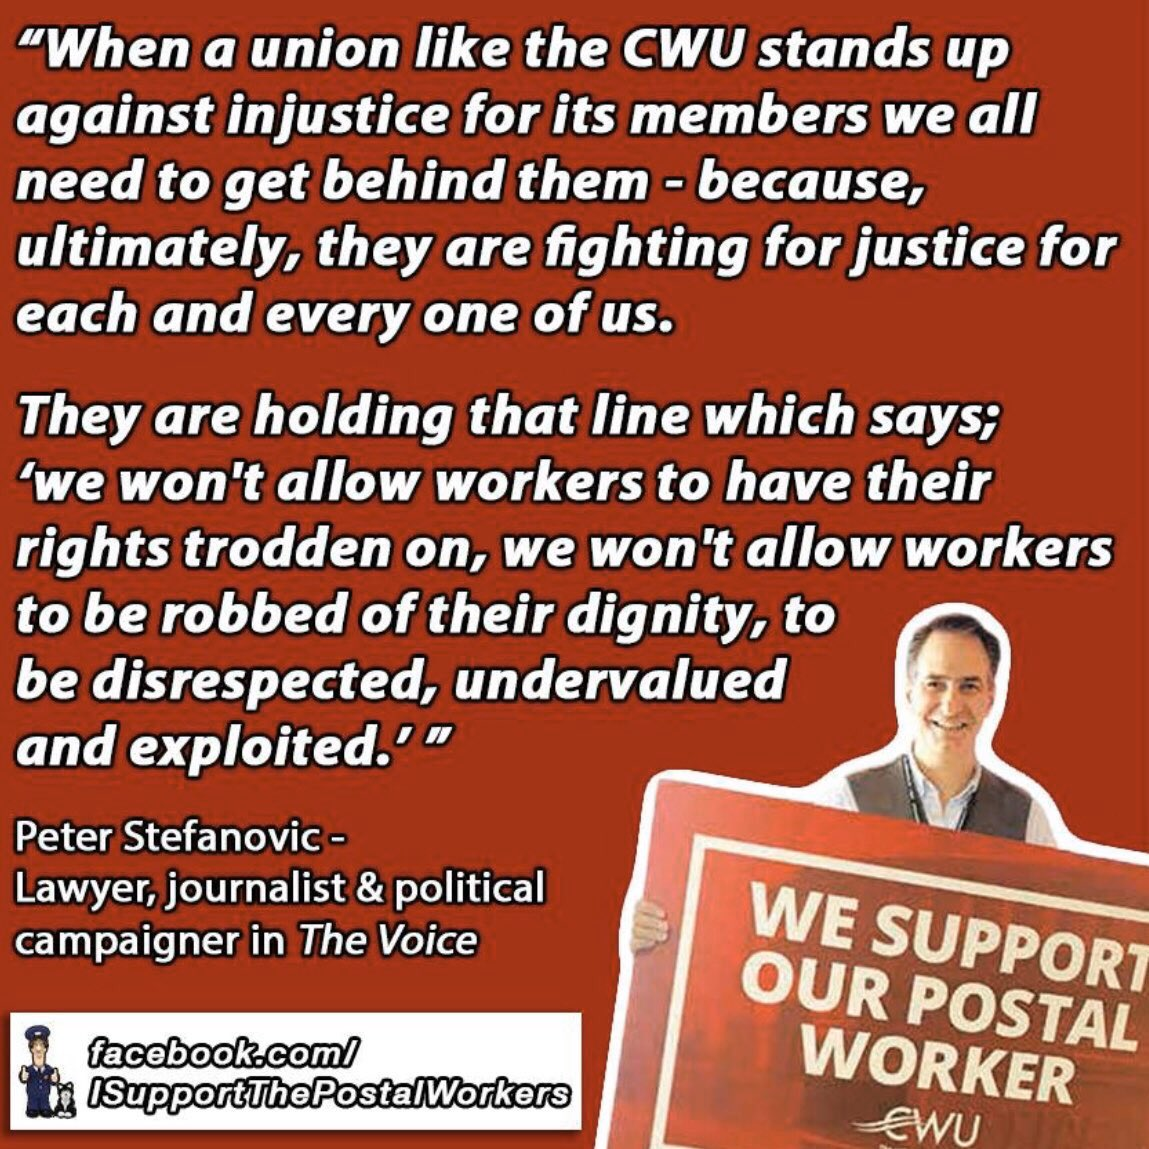 Royal Mail boss is taking @CWUnews to court to try & overturn a strike ballot which won a 97% yes vote! Our postal workers,fighting for their jobs, have always been there for us, sun, rain & snow. I'm standing with them. Royal Mail should stop wasting time & get round the table